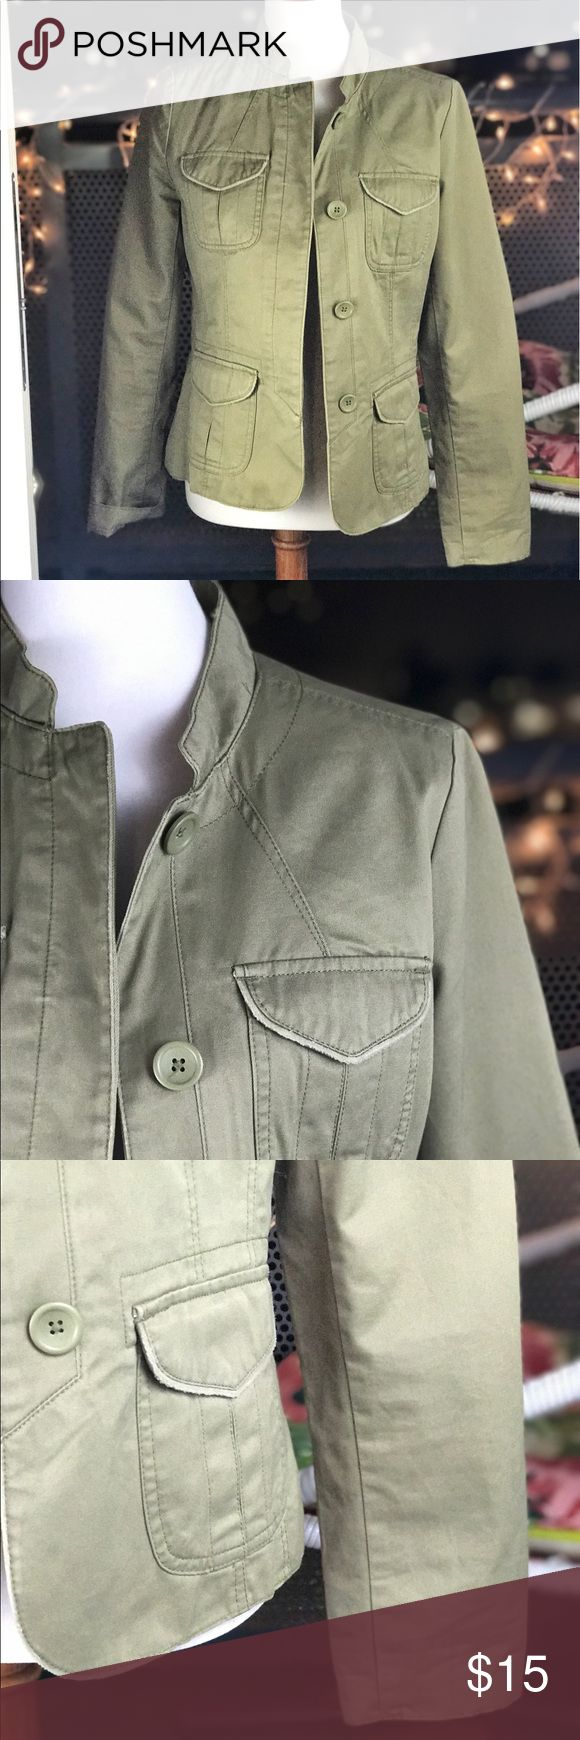 •HUGE CLEARANCE•Old navy olive jacket Olive color ! True to size Old Navy Jackets & Coats Blazers